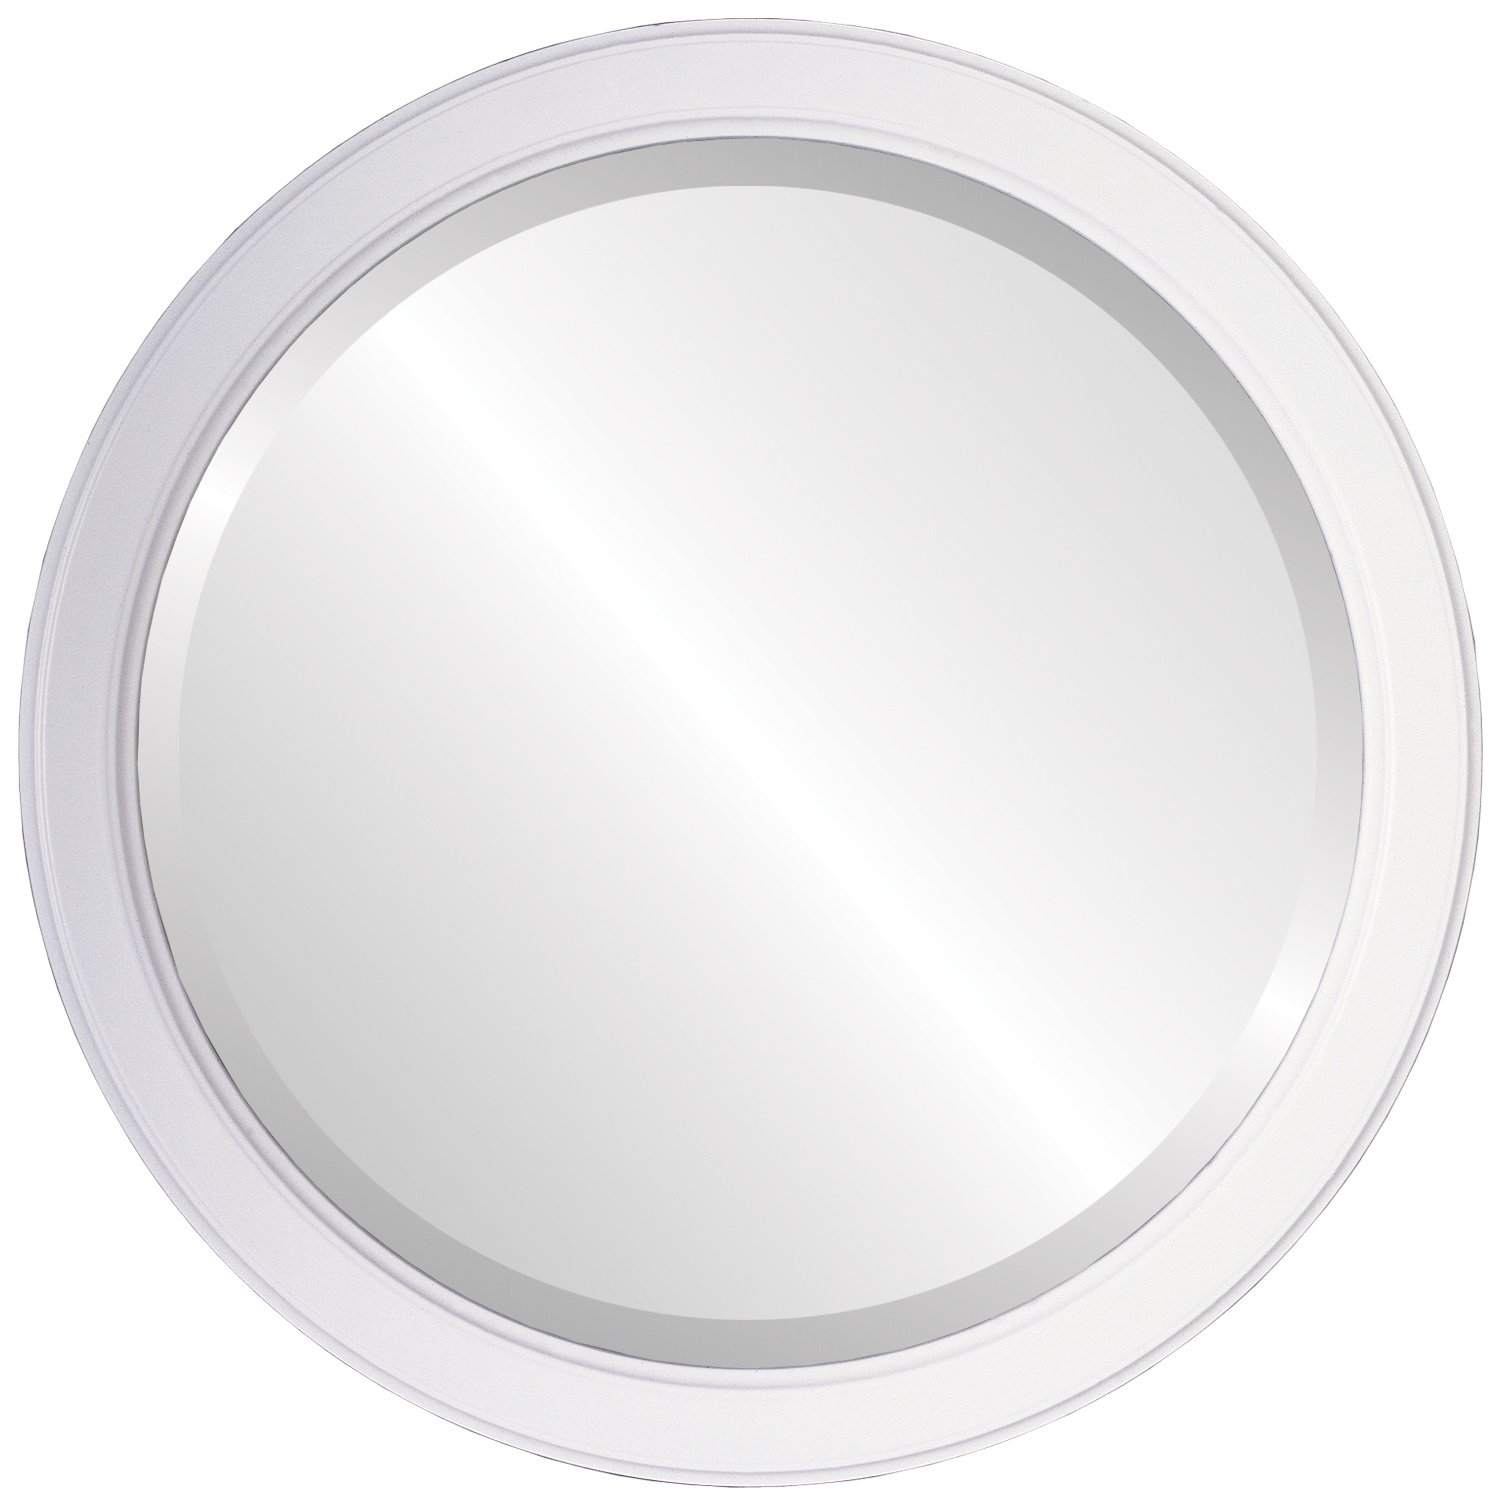 Decorative Mirror for Wall | Framed Round Beveled Wall Mirror | Toronto Style - Linen White - 26x26 outside dimensions